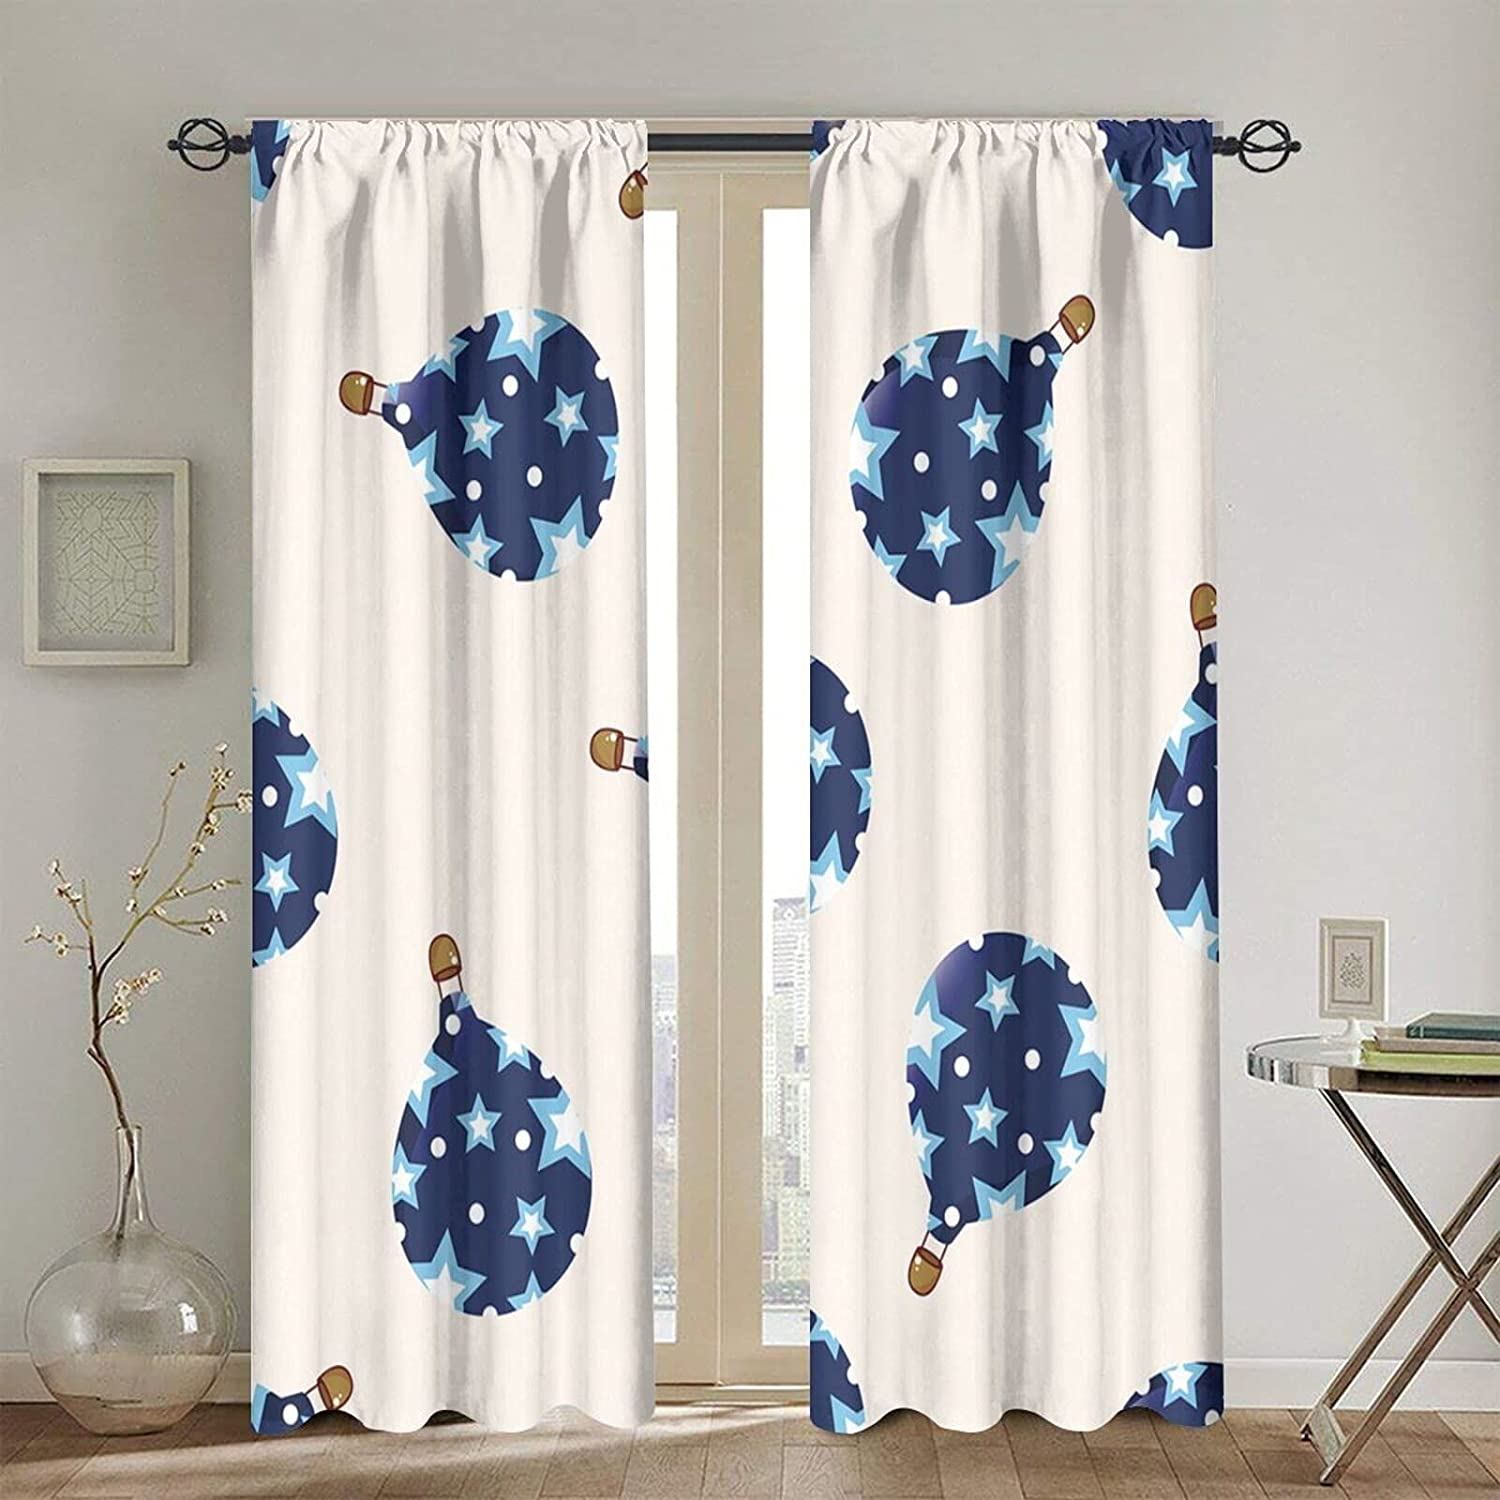 Rod Pocket Blackout Curtains Thermal Popular Free Shipping Cheap Bargain Gift popular Curtain Insulated Window St